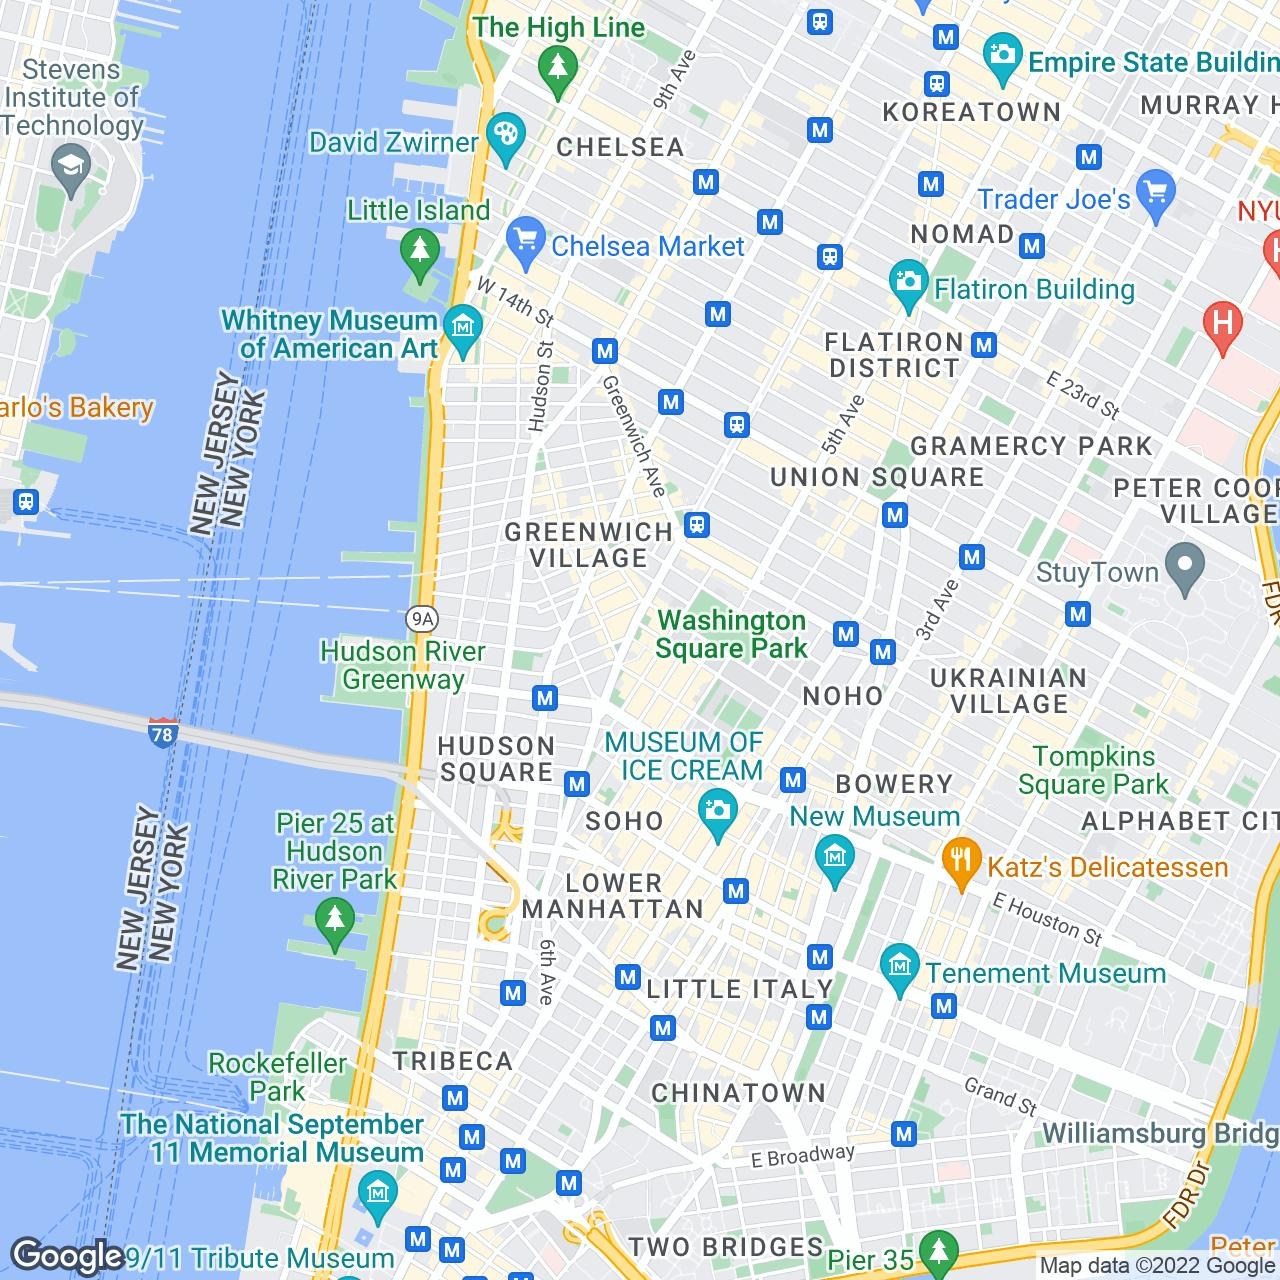 Show Me A Map Of My Area Mauritius Map Elastic Search Mapping - Show me the map of new york